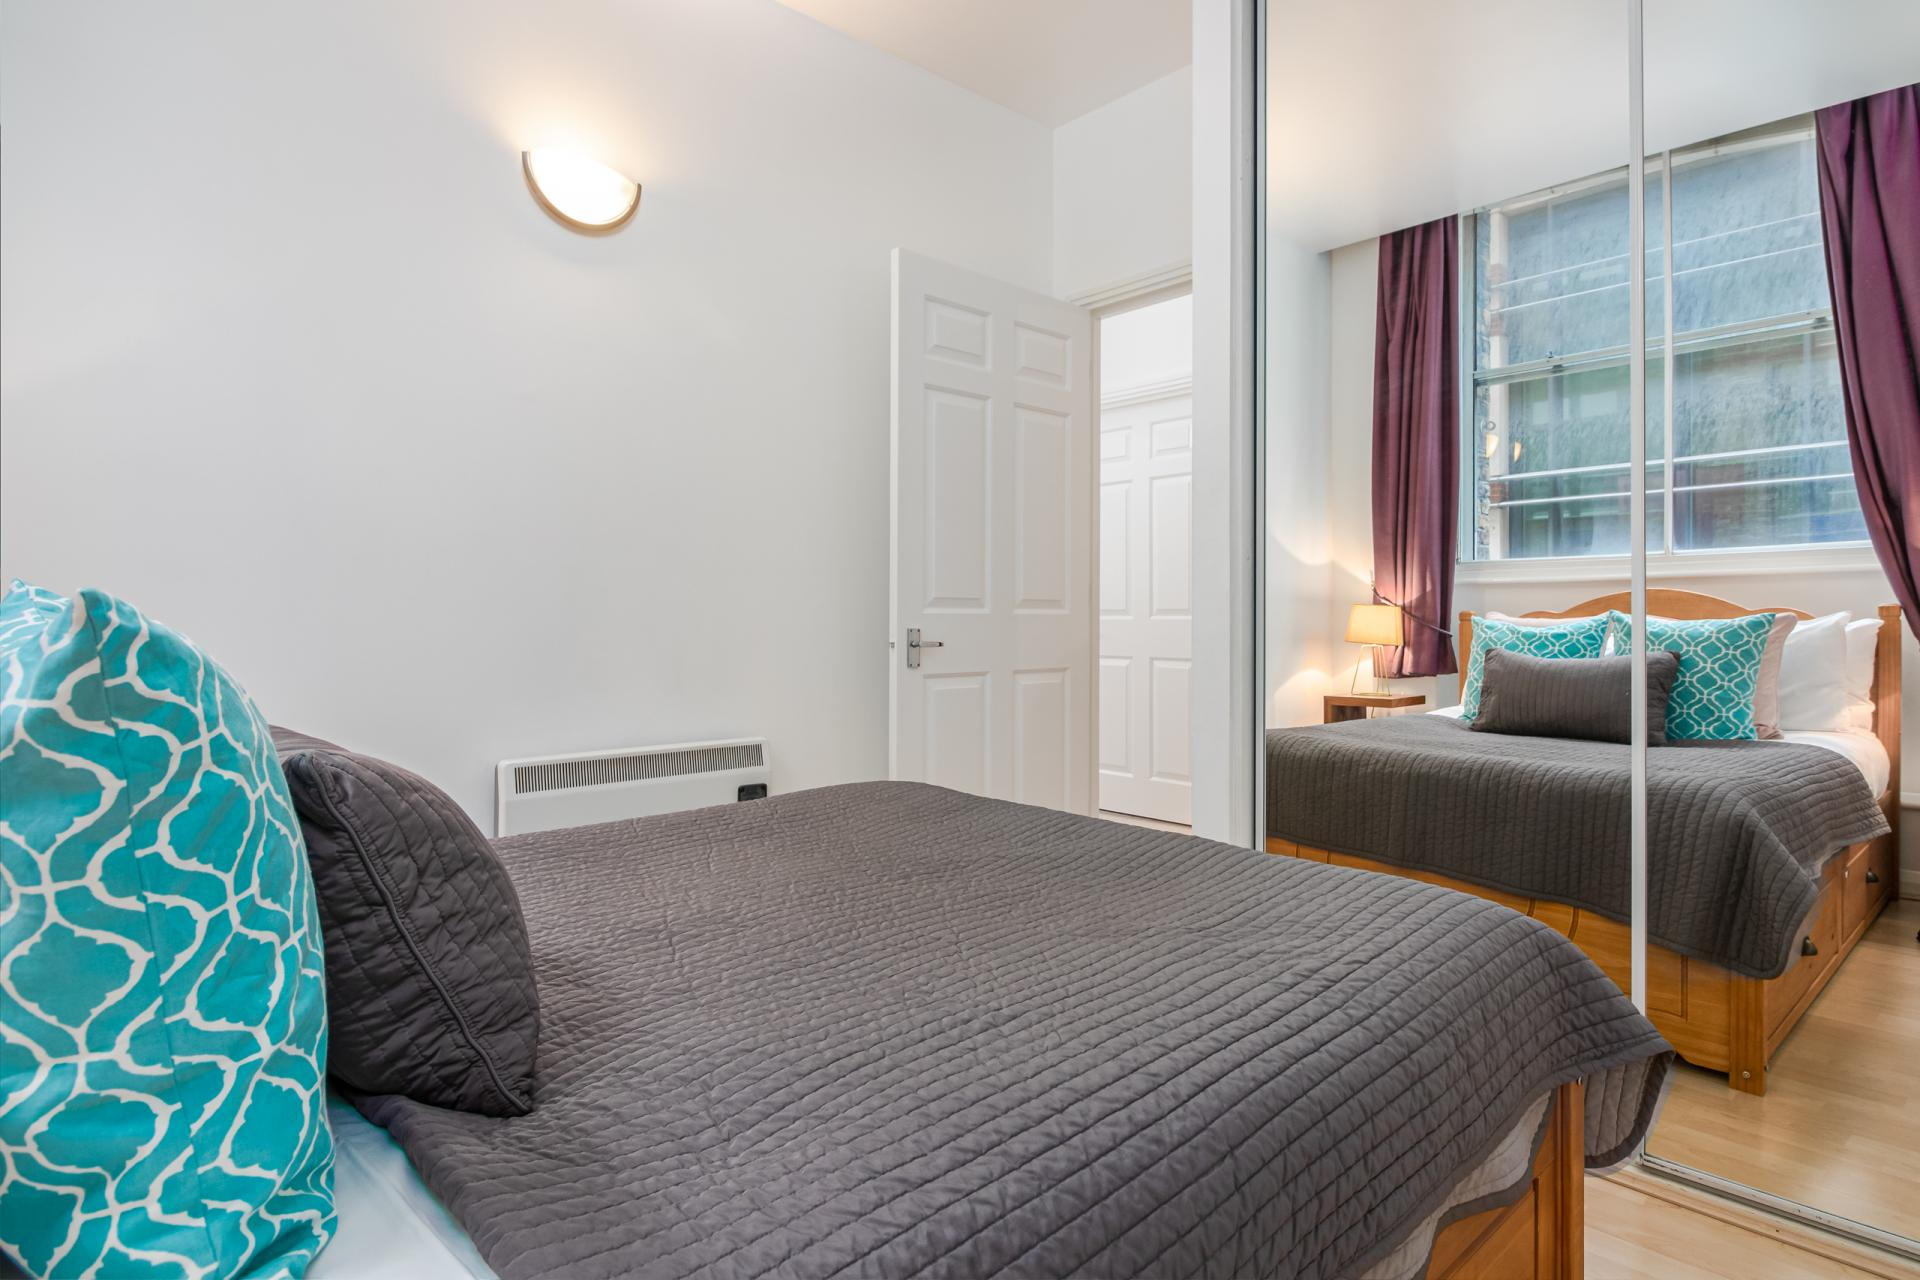 Bed at Priory House Apartments, City, London